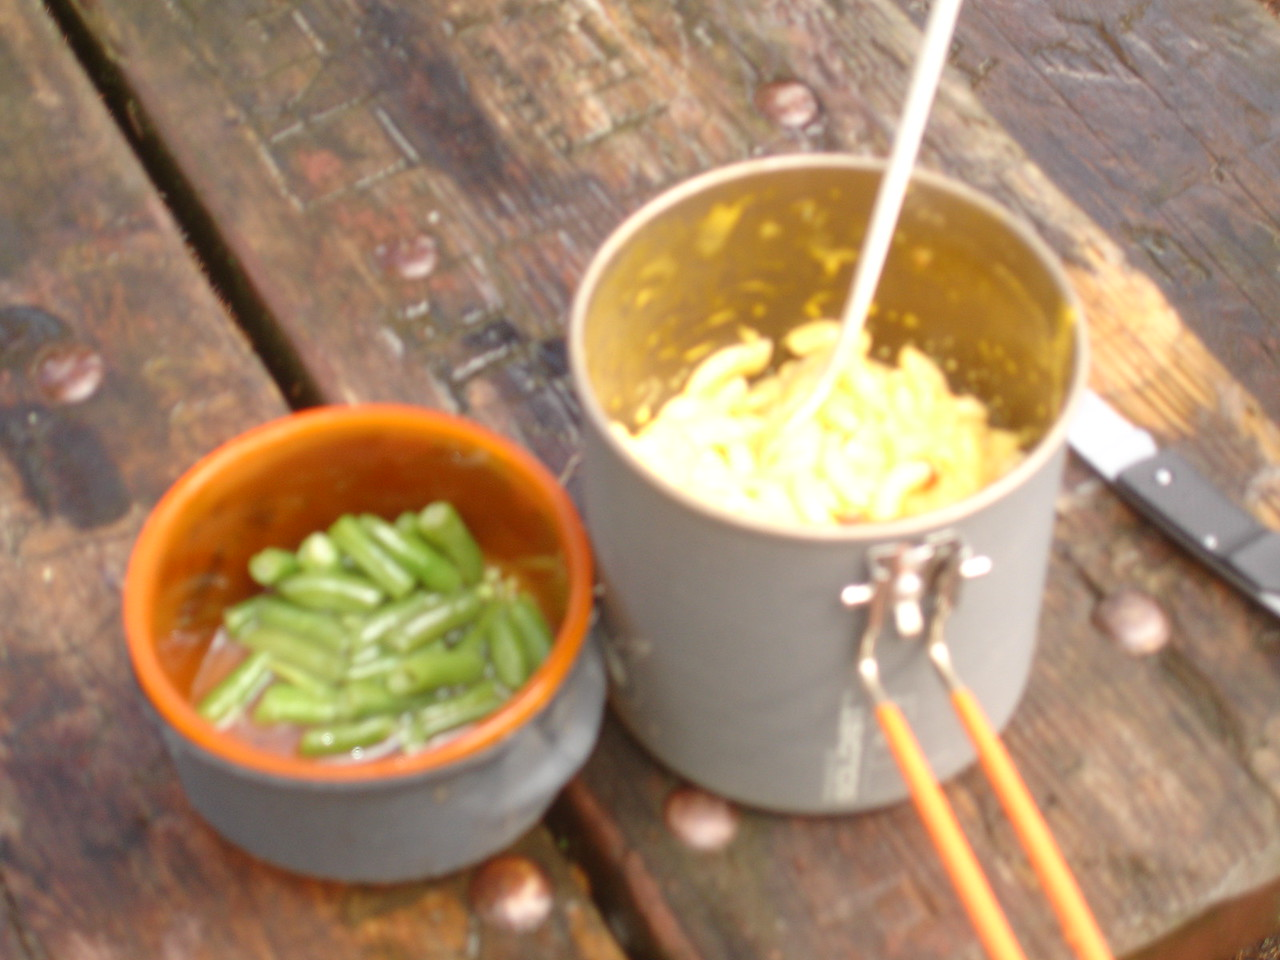 Kraft Dinner and rehydrated green beans!  There was a picnic table at this huge and ugly campsite.